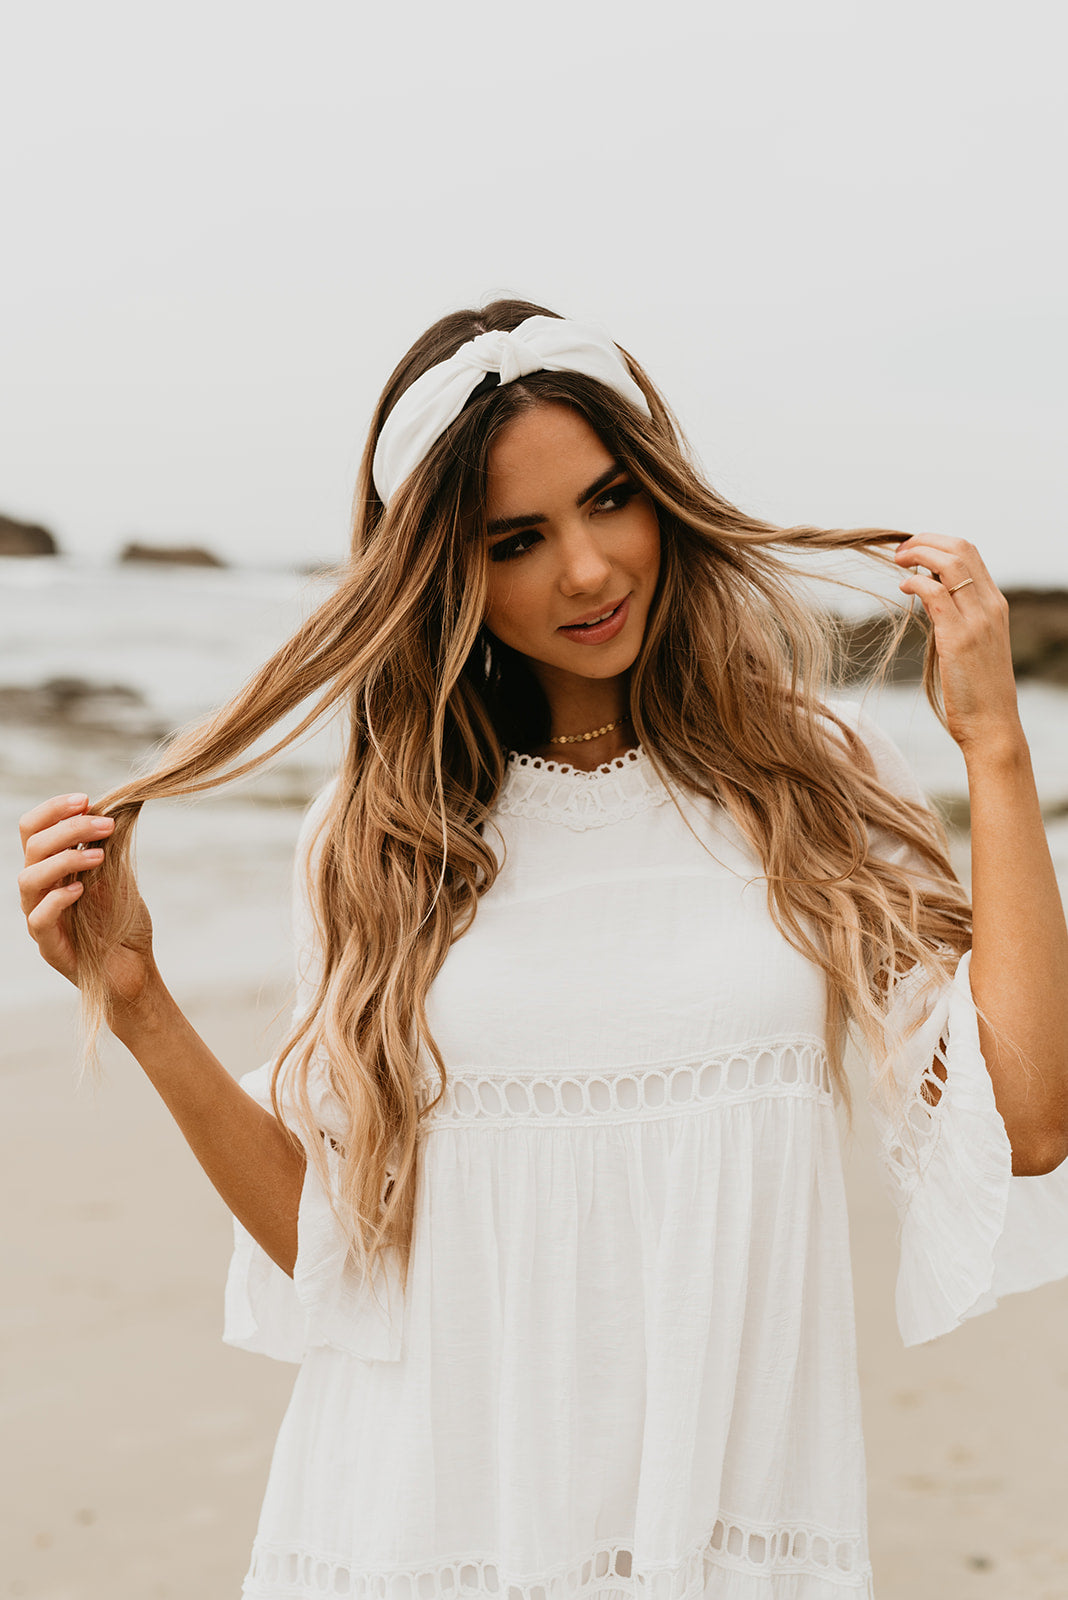 THE KNOT HEADBAND IN WHITE